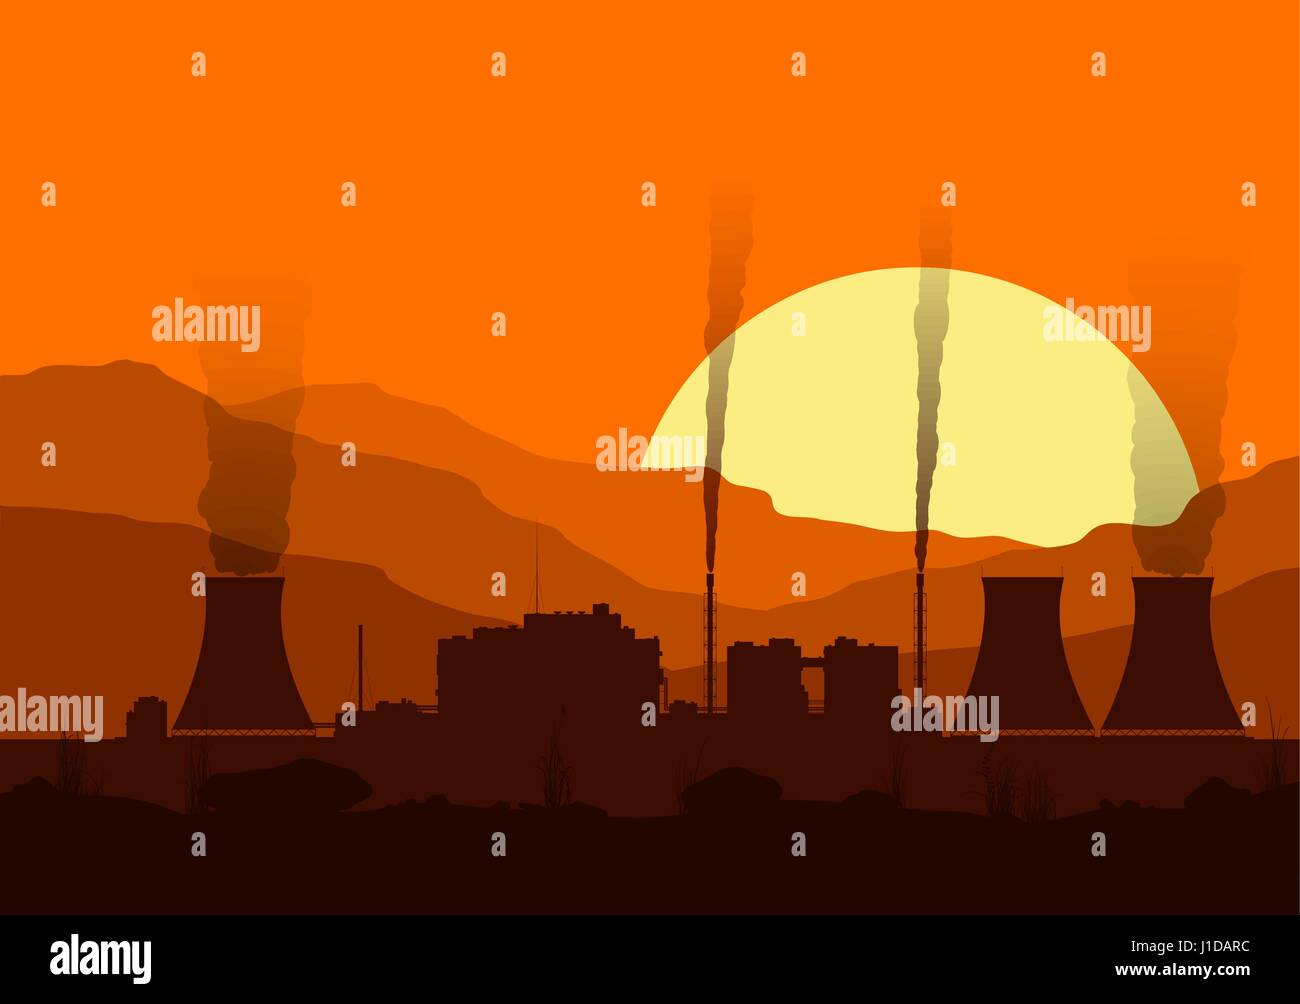 Silhouette of a nuclear power plant at sunset.  - Stock Vector